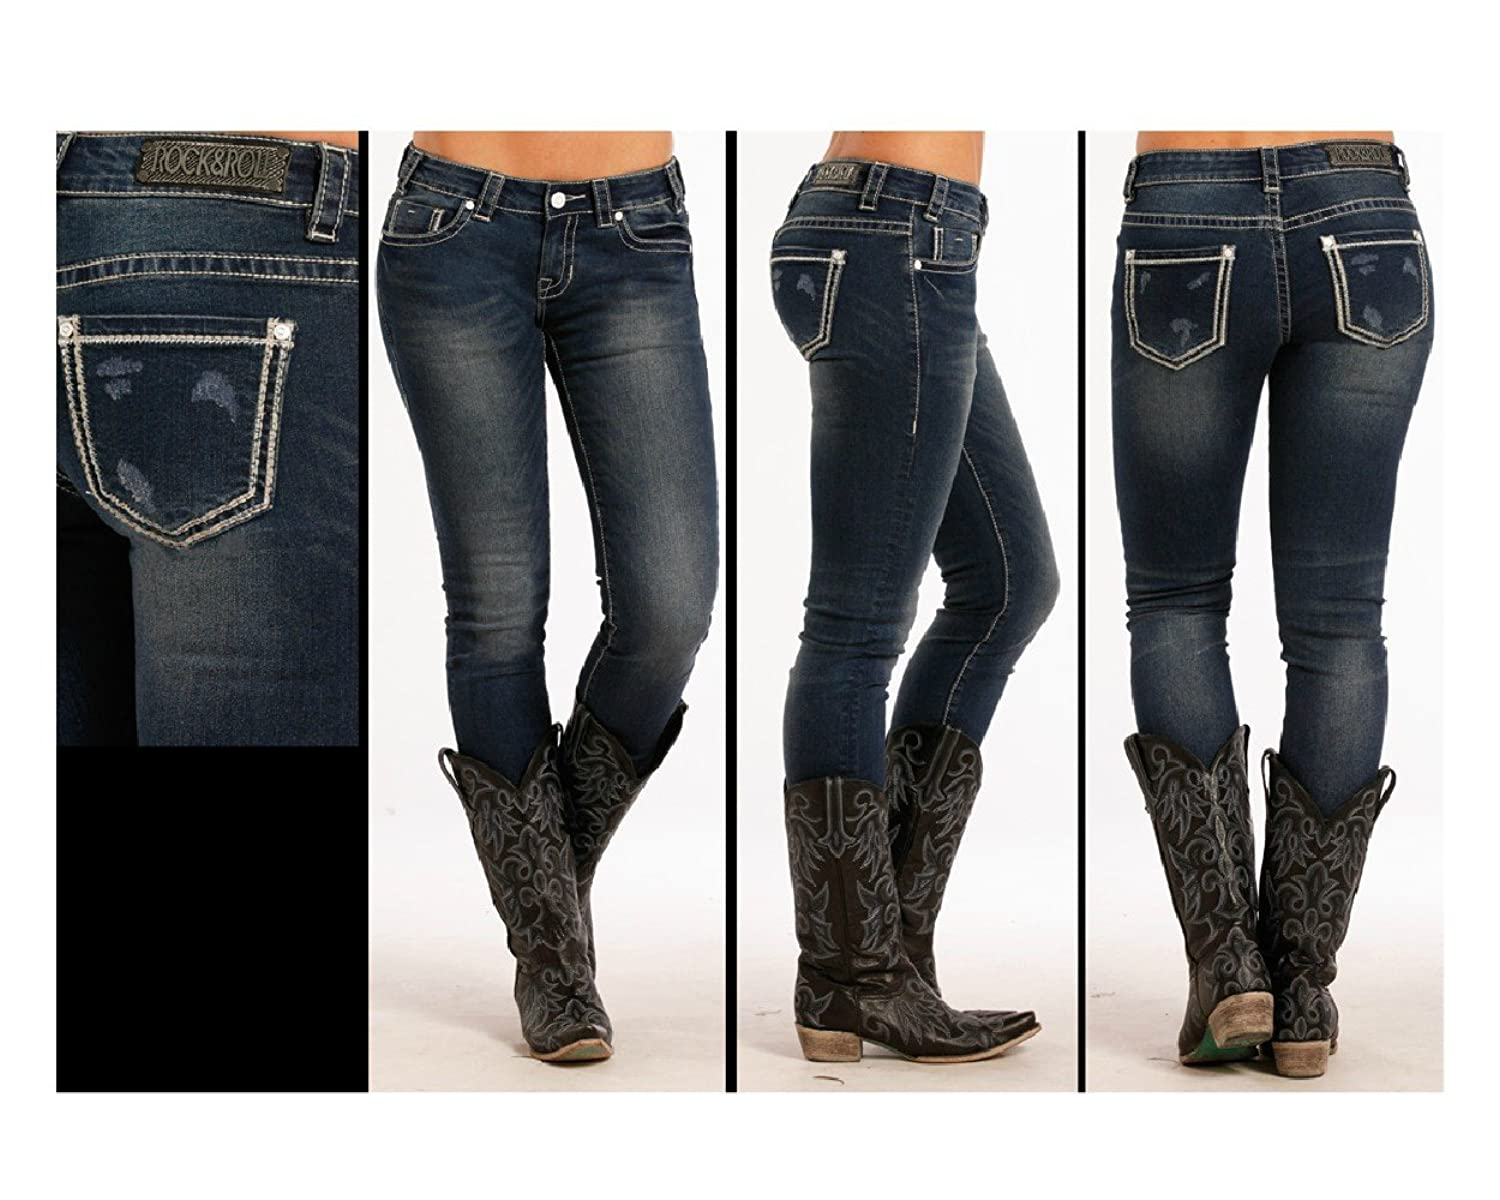 W0S8487 ROCK AND ROLL COWGIRL JUNIORS LOW RISE SKINNY STRETCH JEAN WITH EMBROIDERY